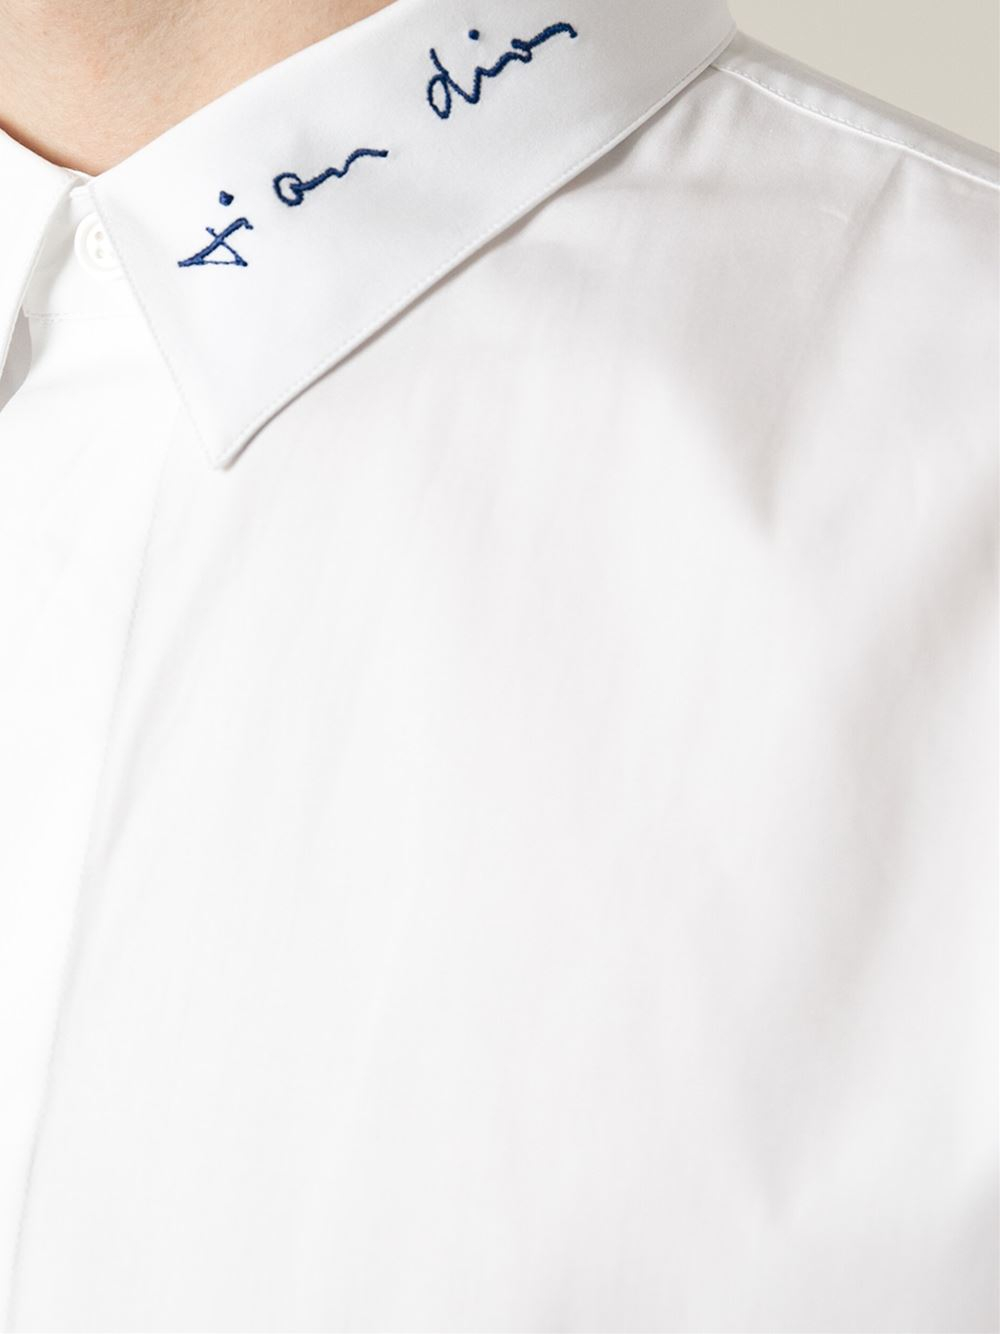 Lyst Dior Homme Embroidered Collar Shirt In White For Men